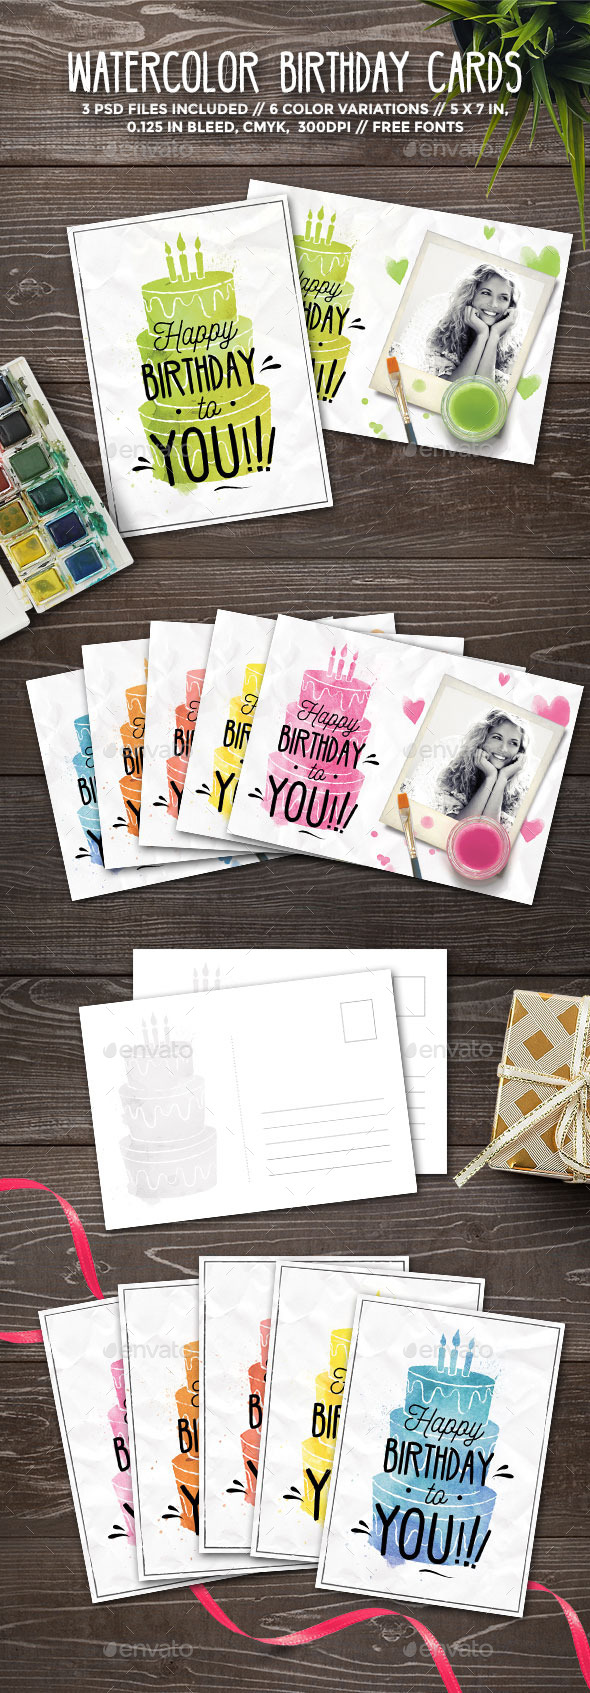 Watercolor Birthday Cards - Birthday Greeting Cards